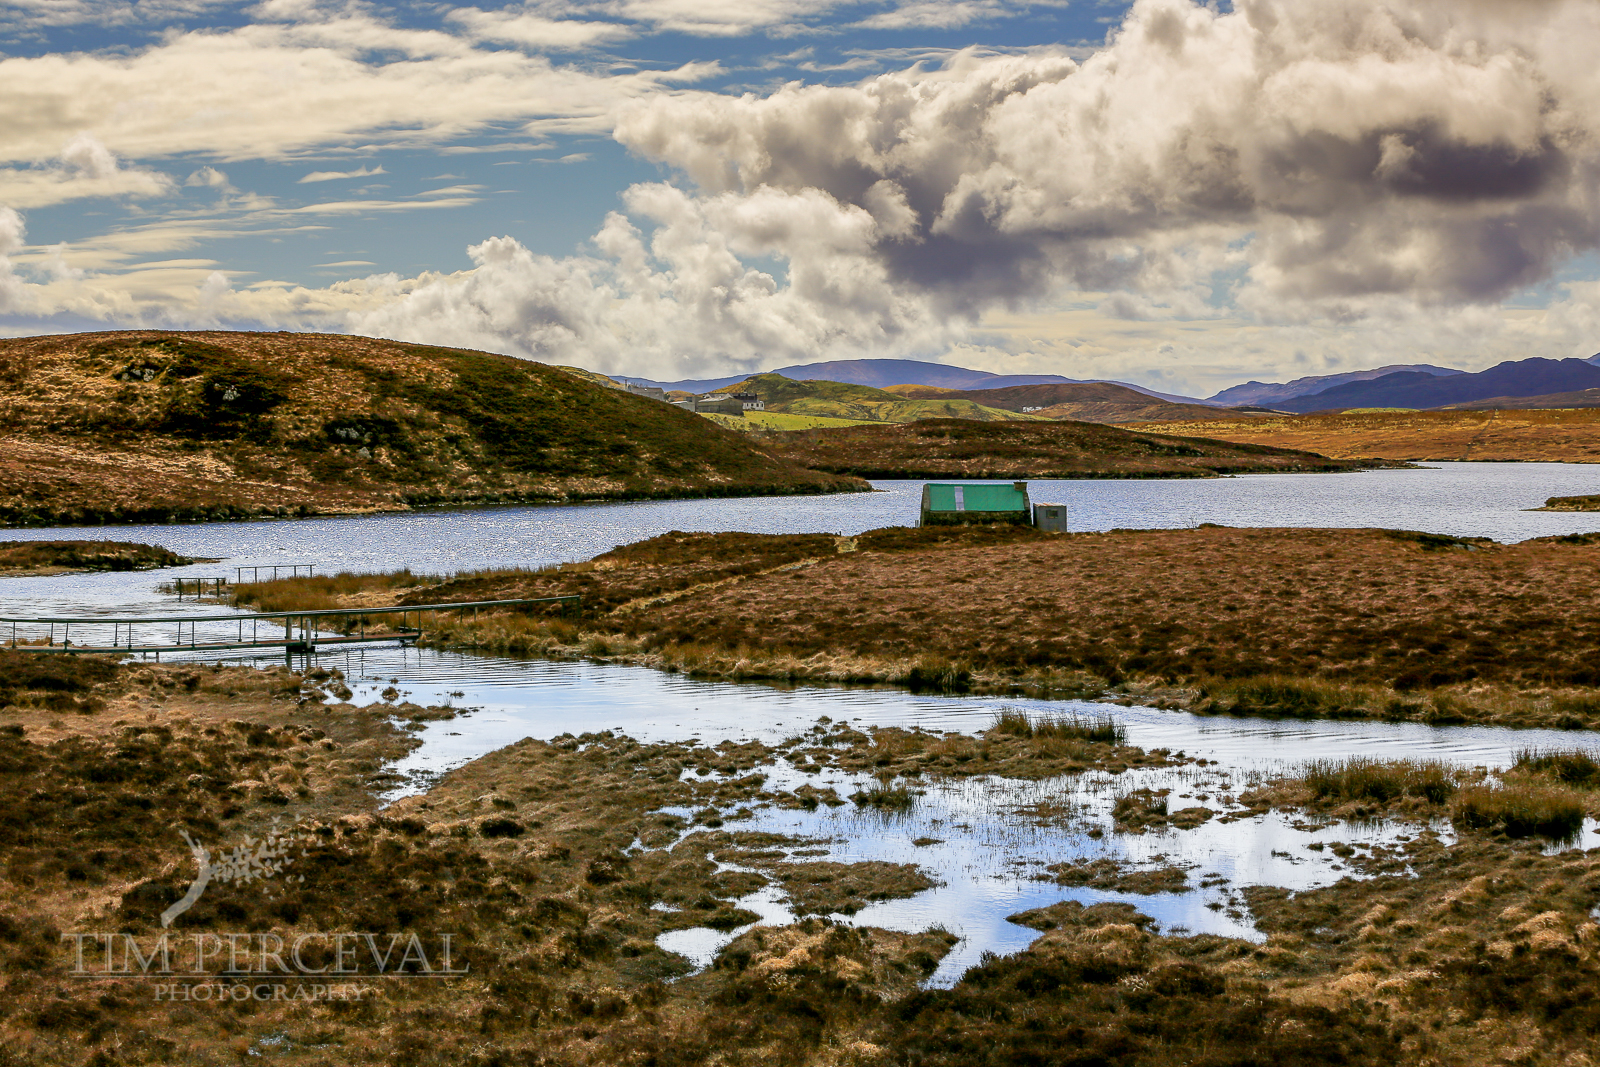 Little Green Hut, Loch Bhaltois, Isle of Lewis